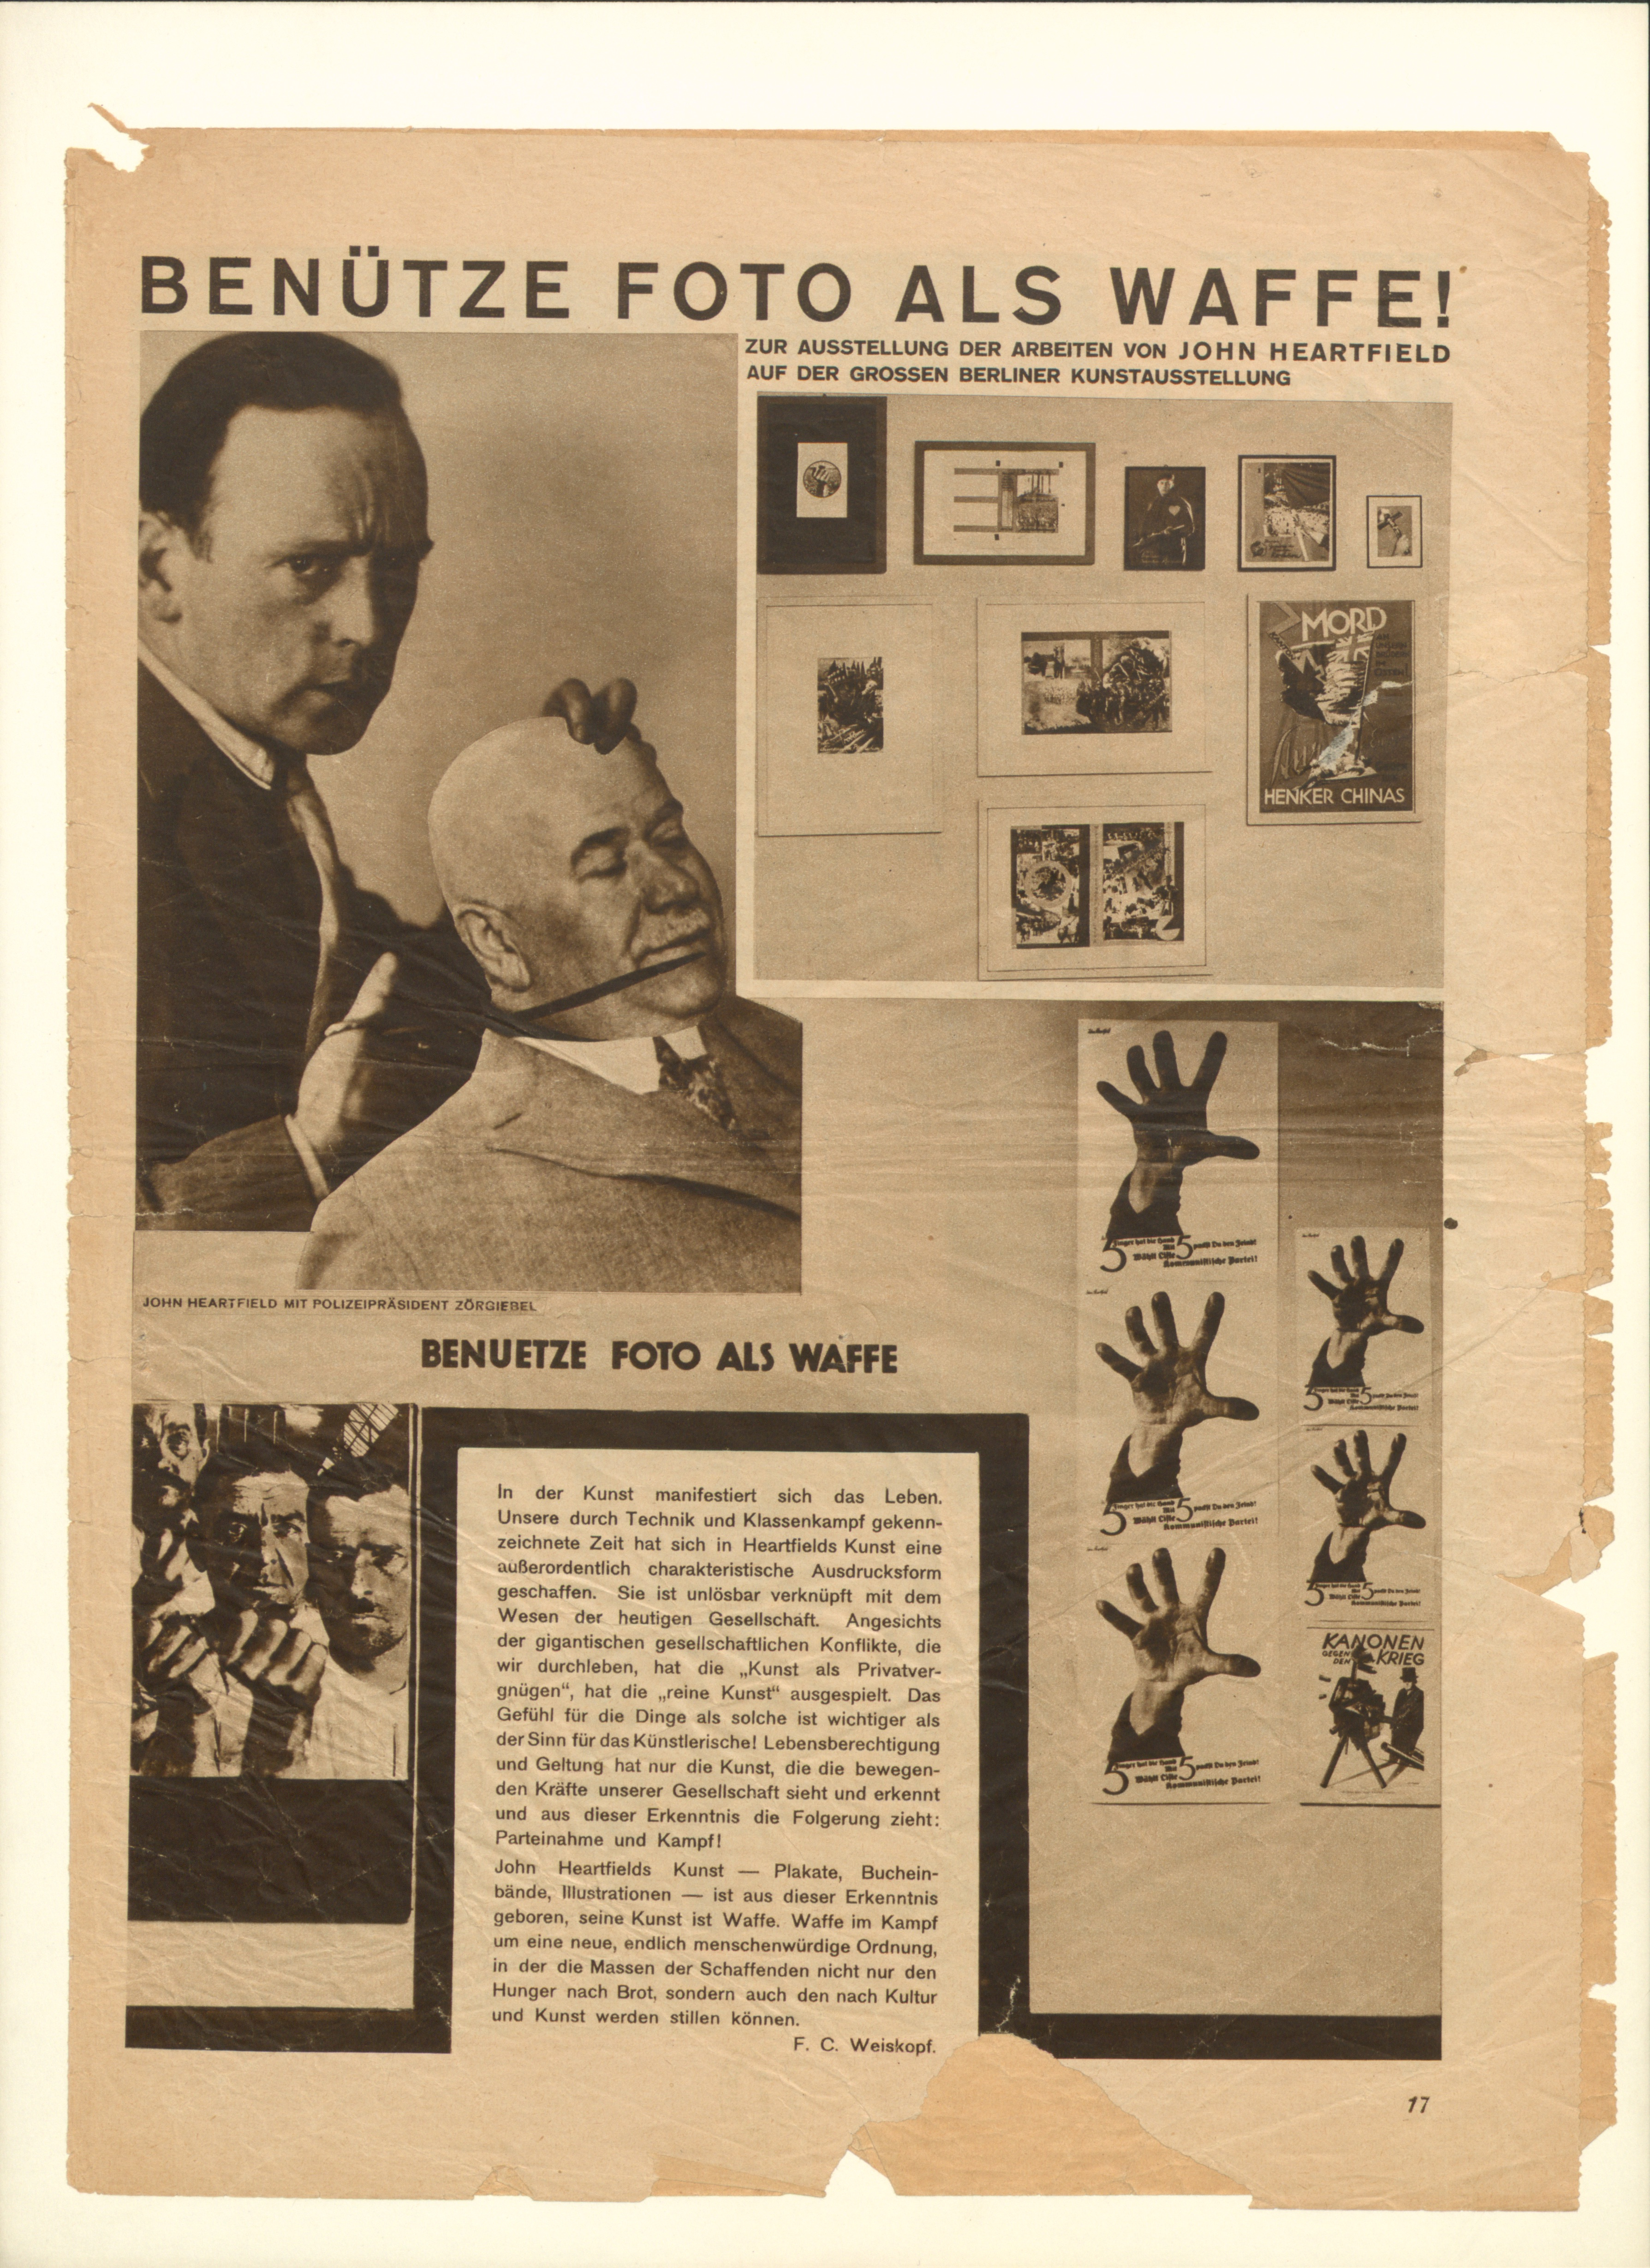 John Heartfield's exhibit Benütze Foto als Waffe! (Use Photography as a Weapon!), in the Film und Foto exhibition in Stuttgart, May 18–July 7, 1929.